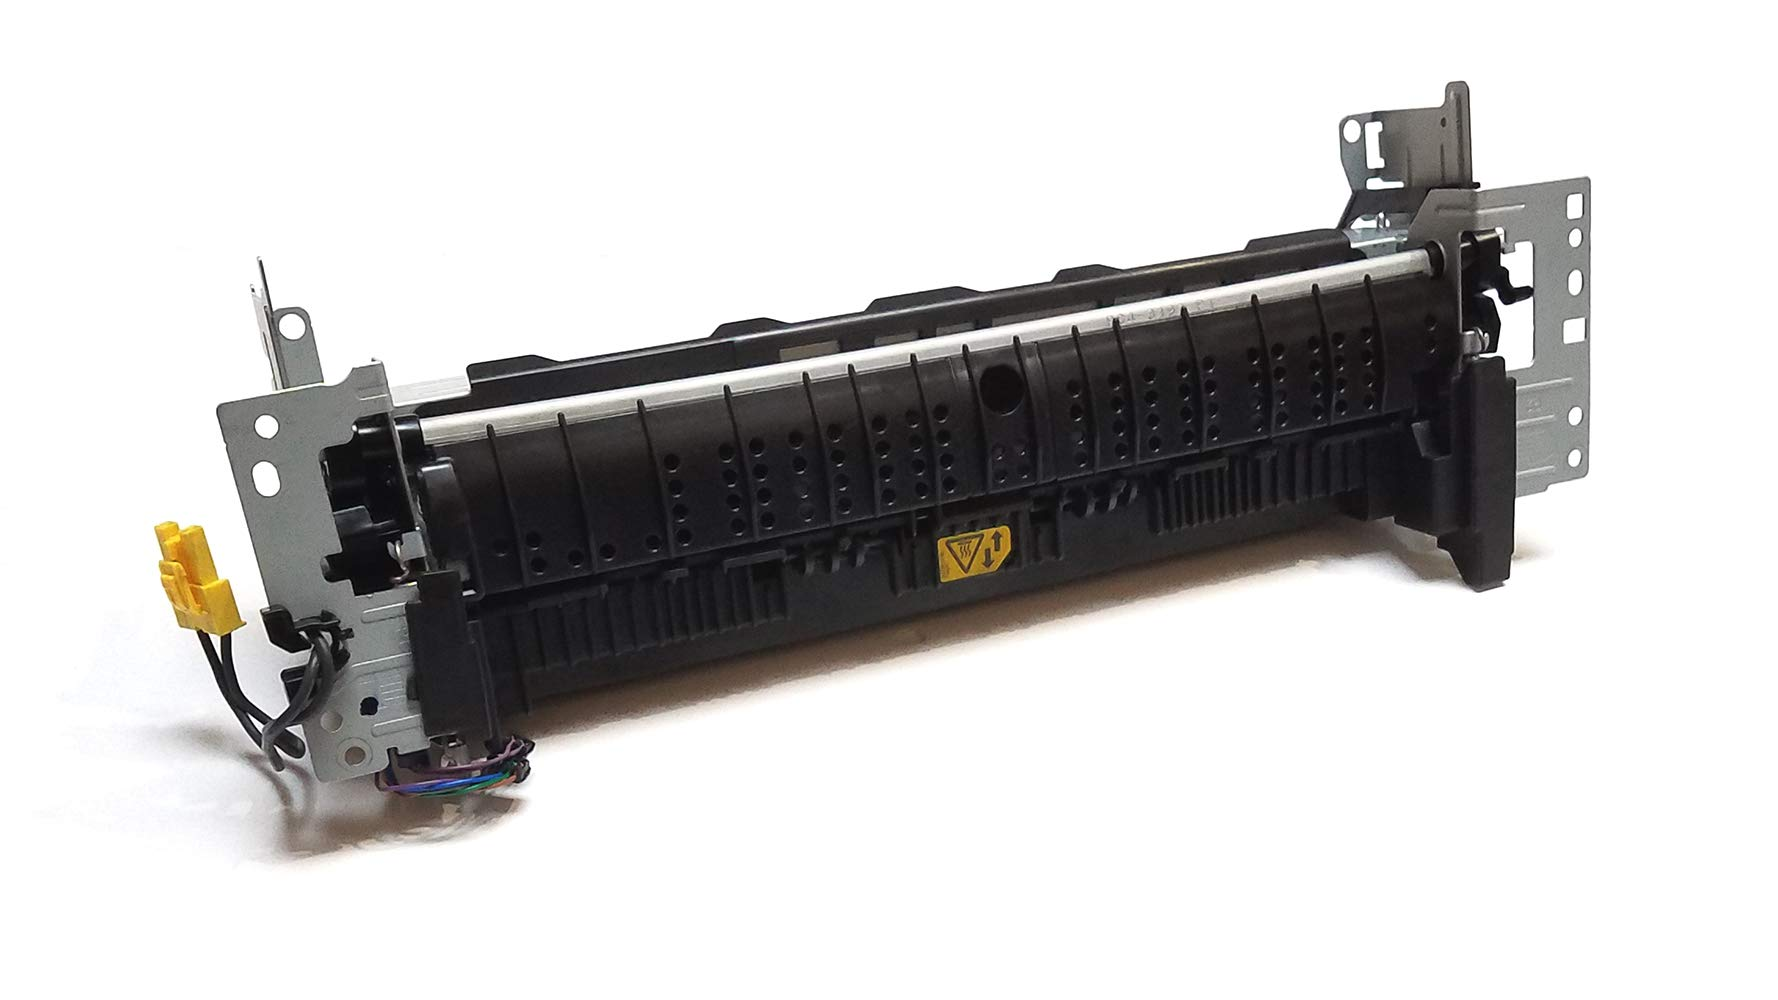 Replacement for HP RM1-4554 On-Site Laser Compatible Fuser P4515 P4015 Works with: P4014 New Build